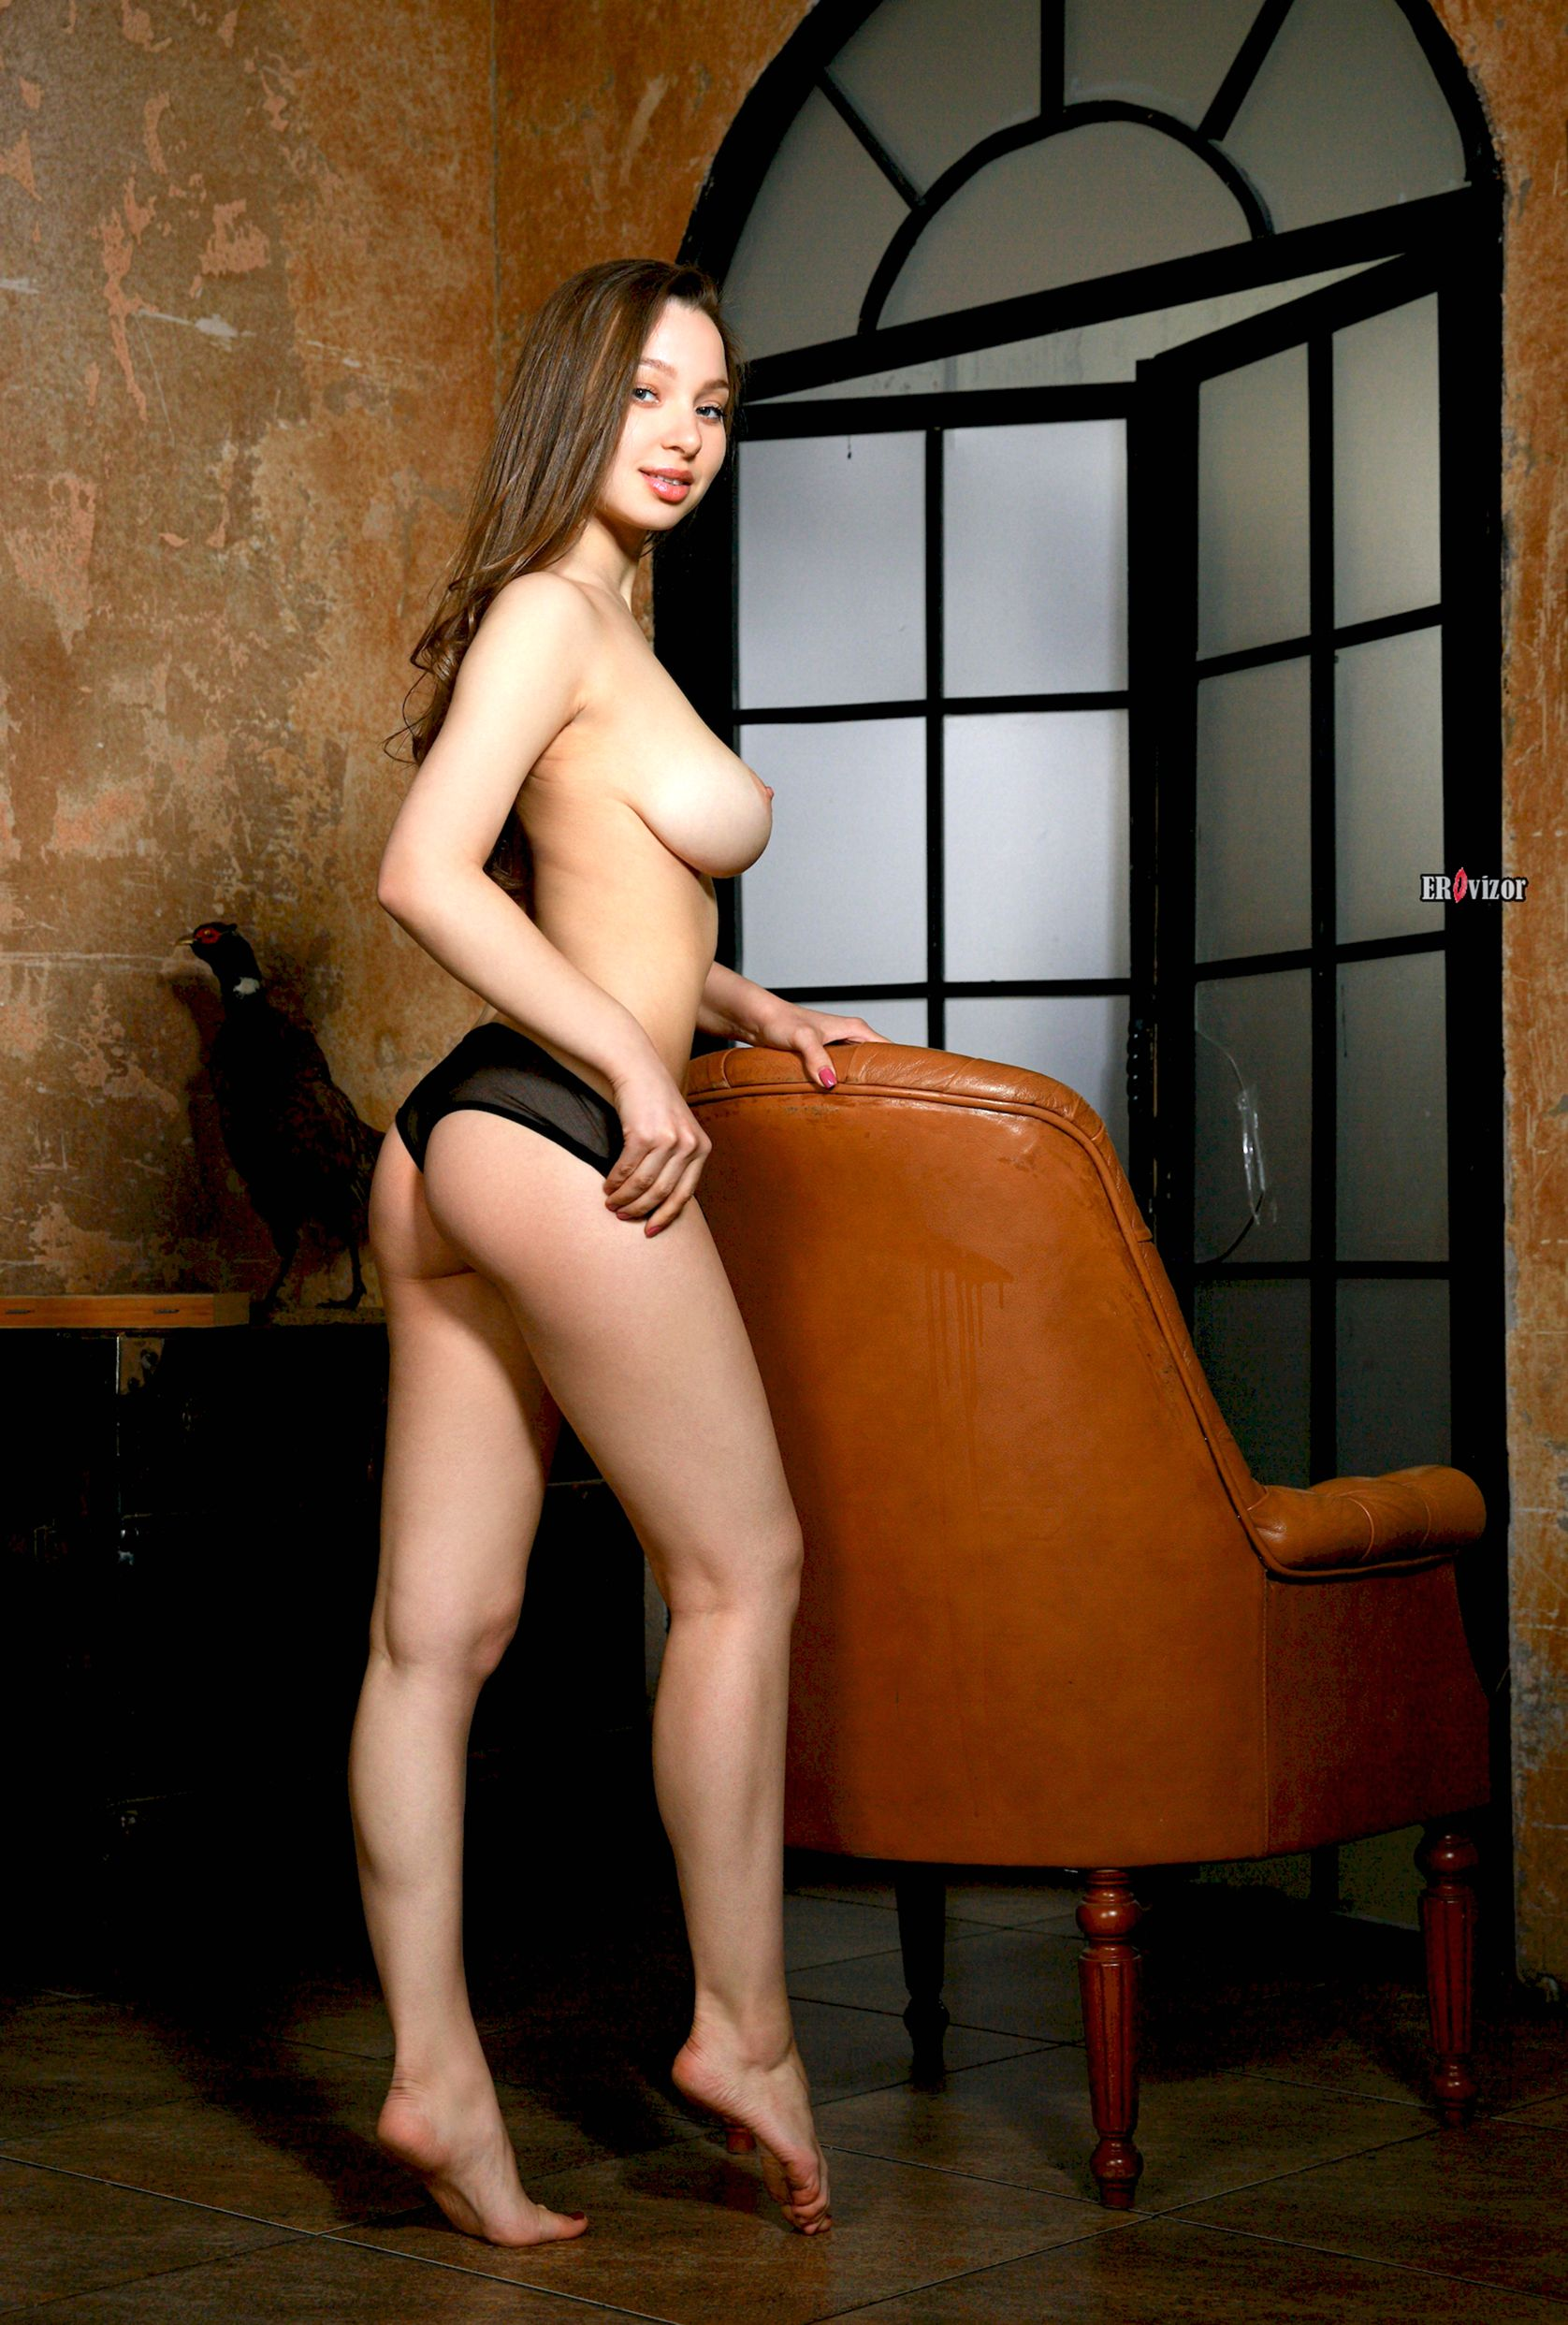 erovizor-busty-babe-charlize-with-big-naturals-wearing-black-lingerie-10